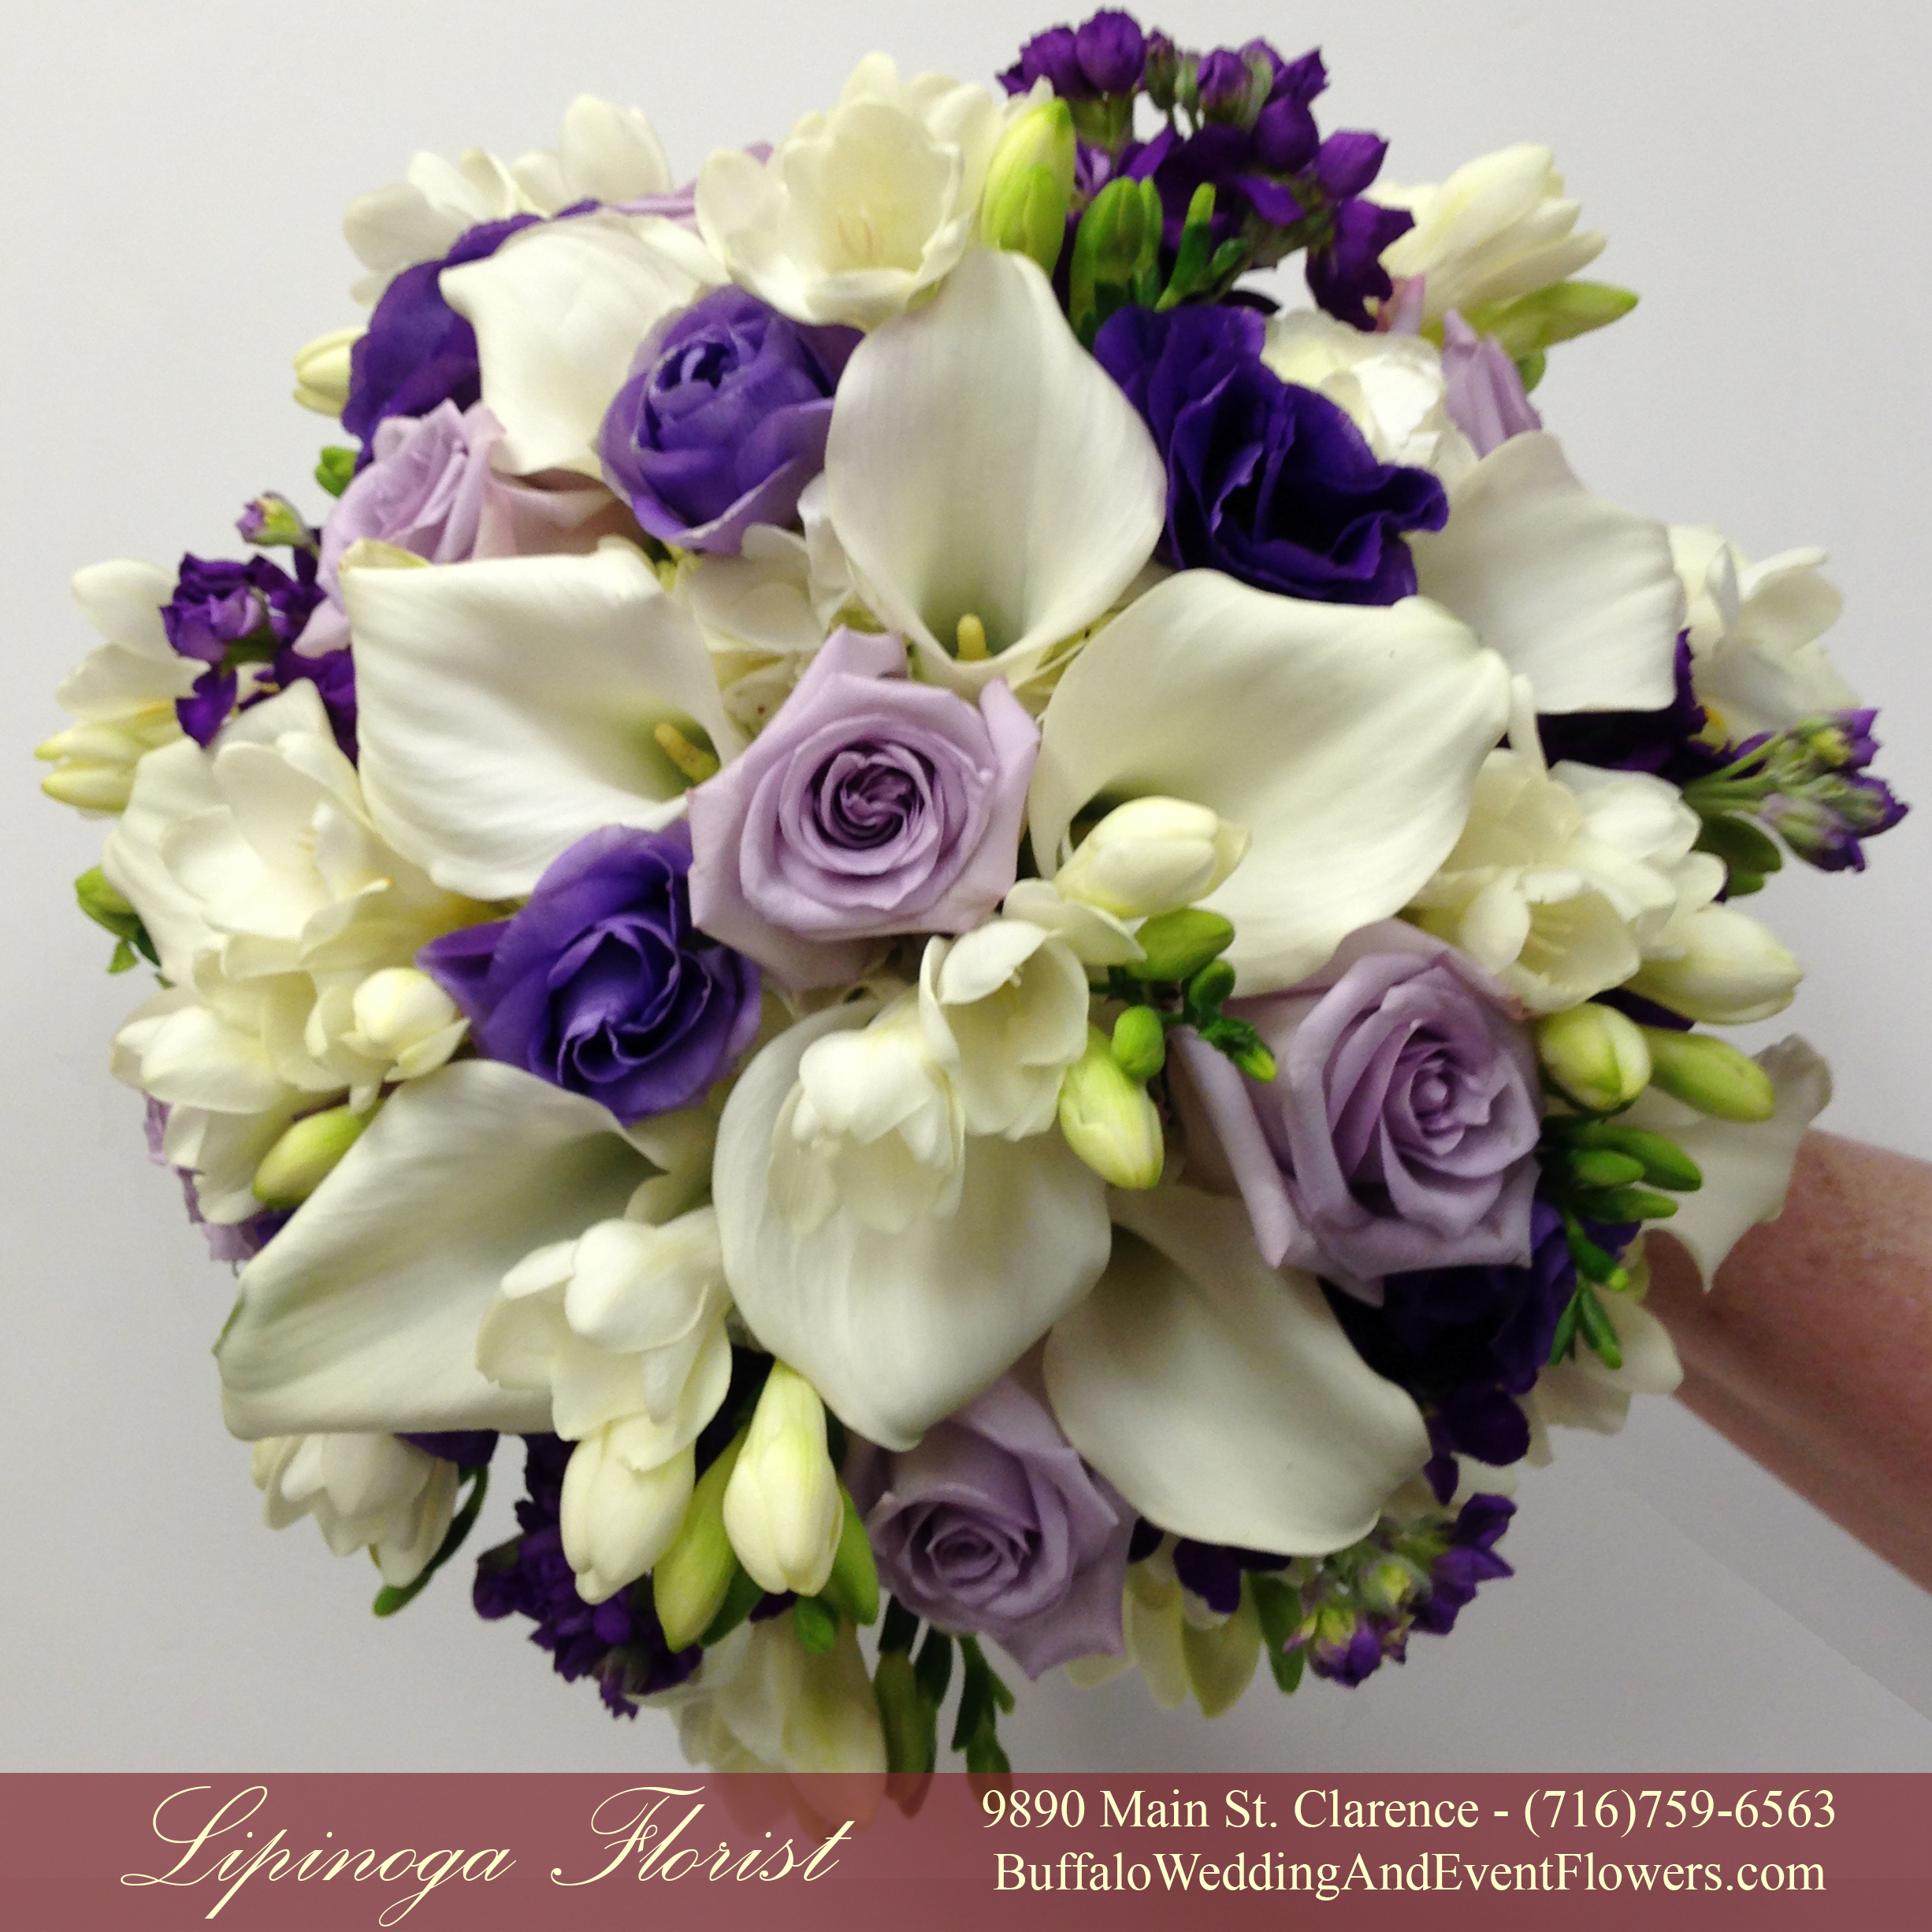 Outdoor Wedding Flowers Buffalo Wedding Event Flowers By